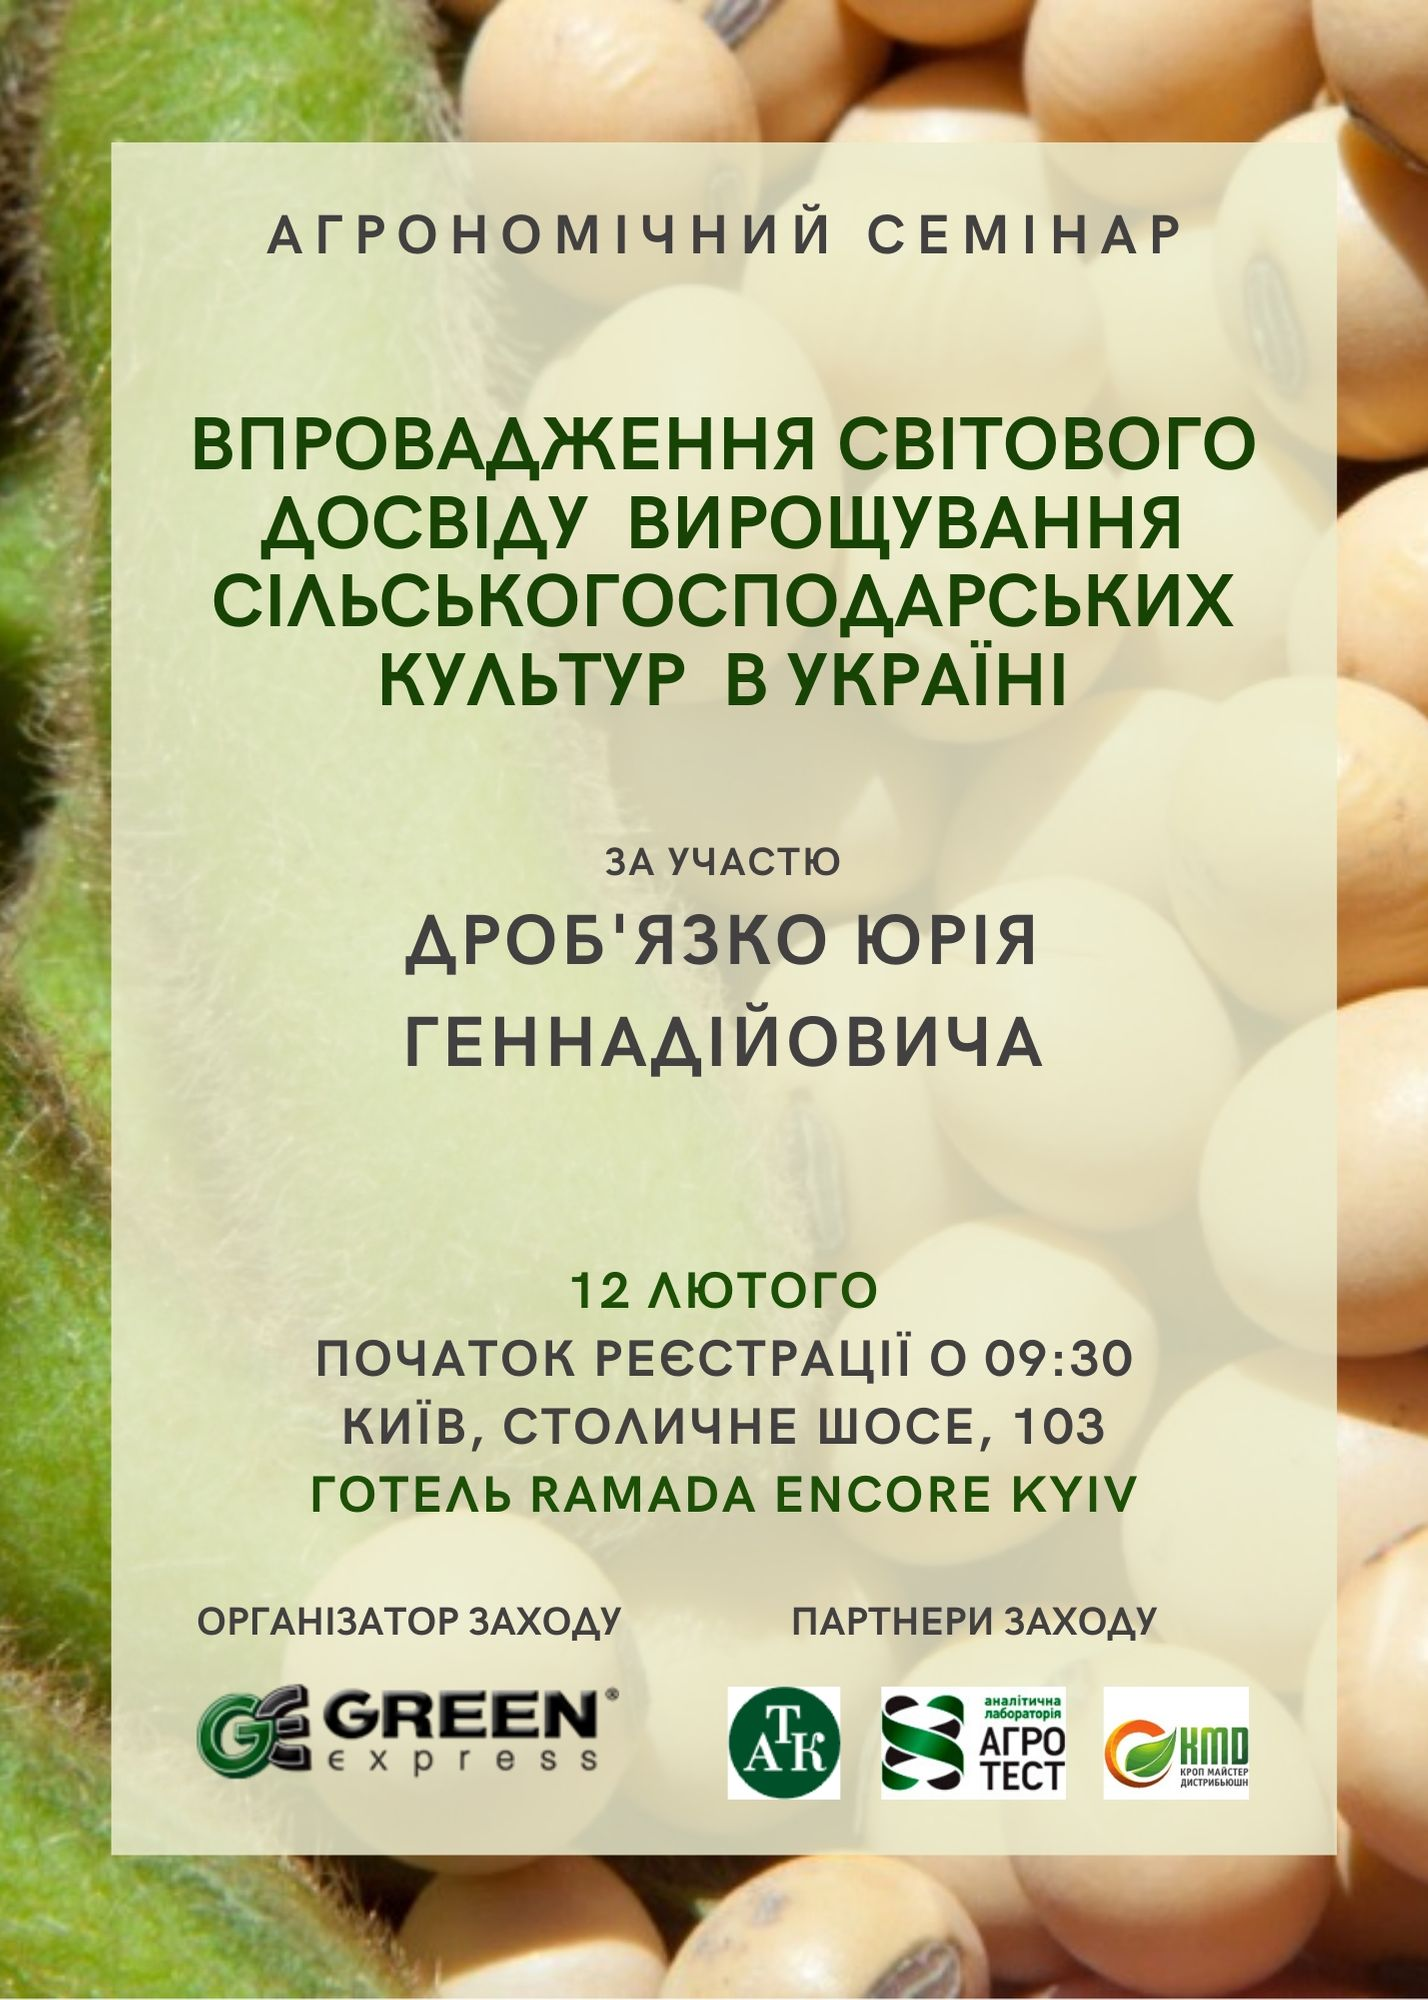 Green Express invites you to visit agro seminar!